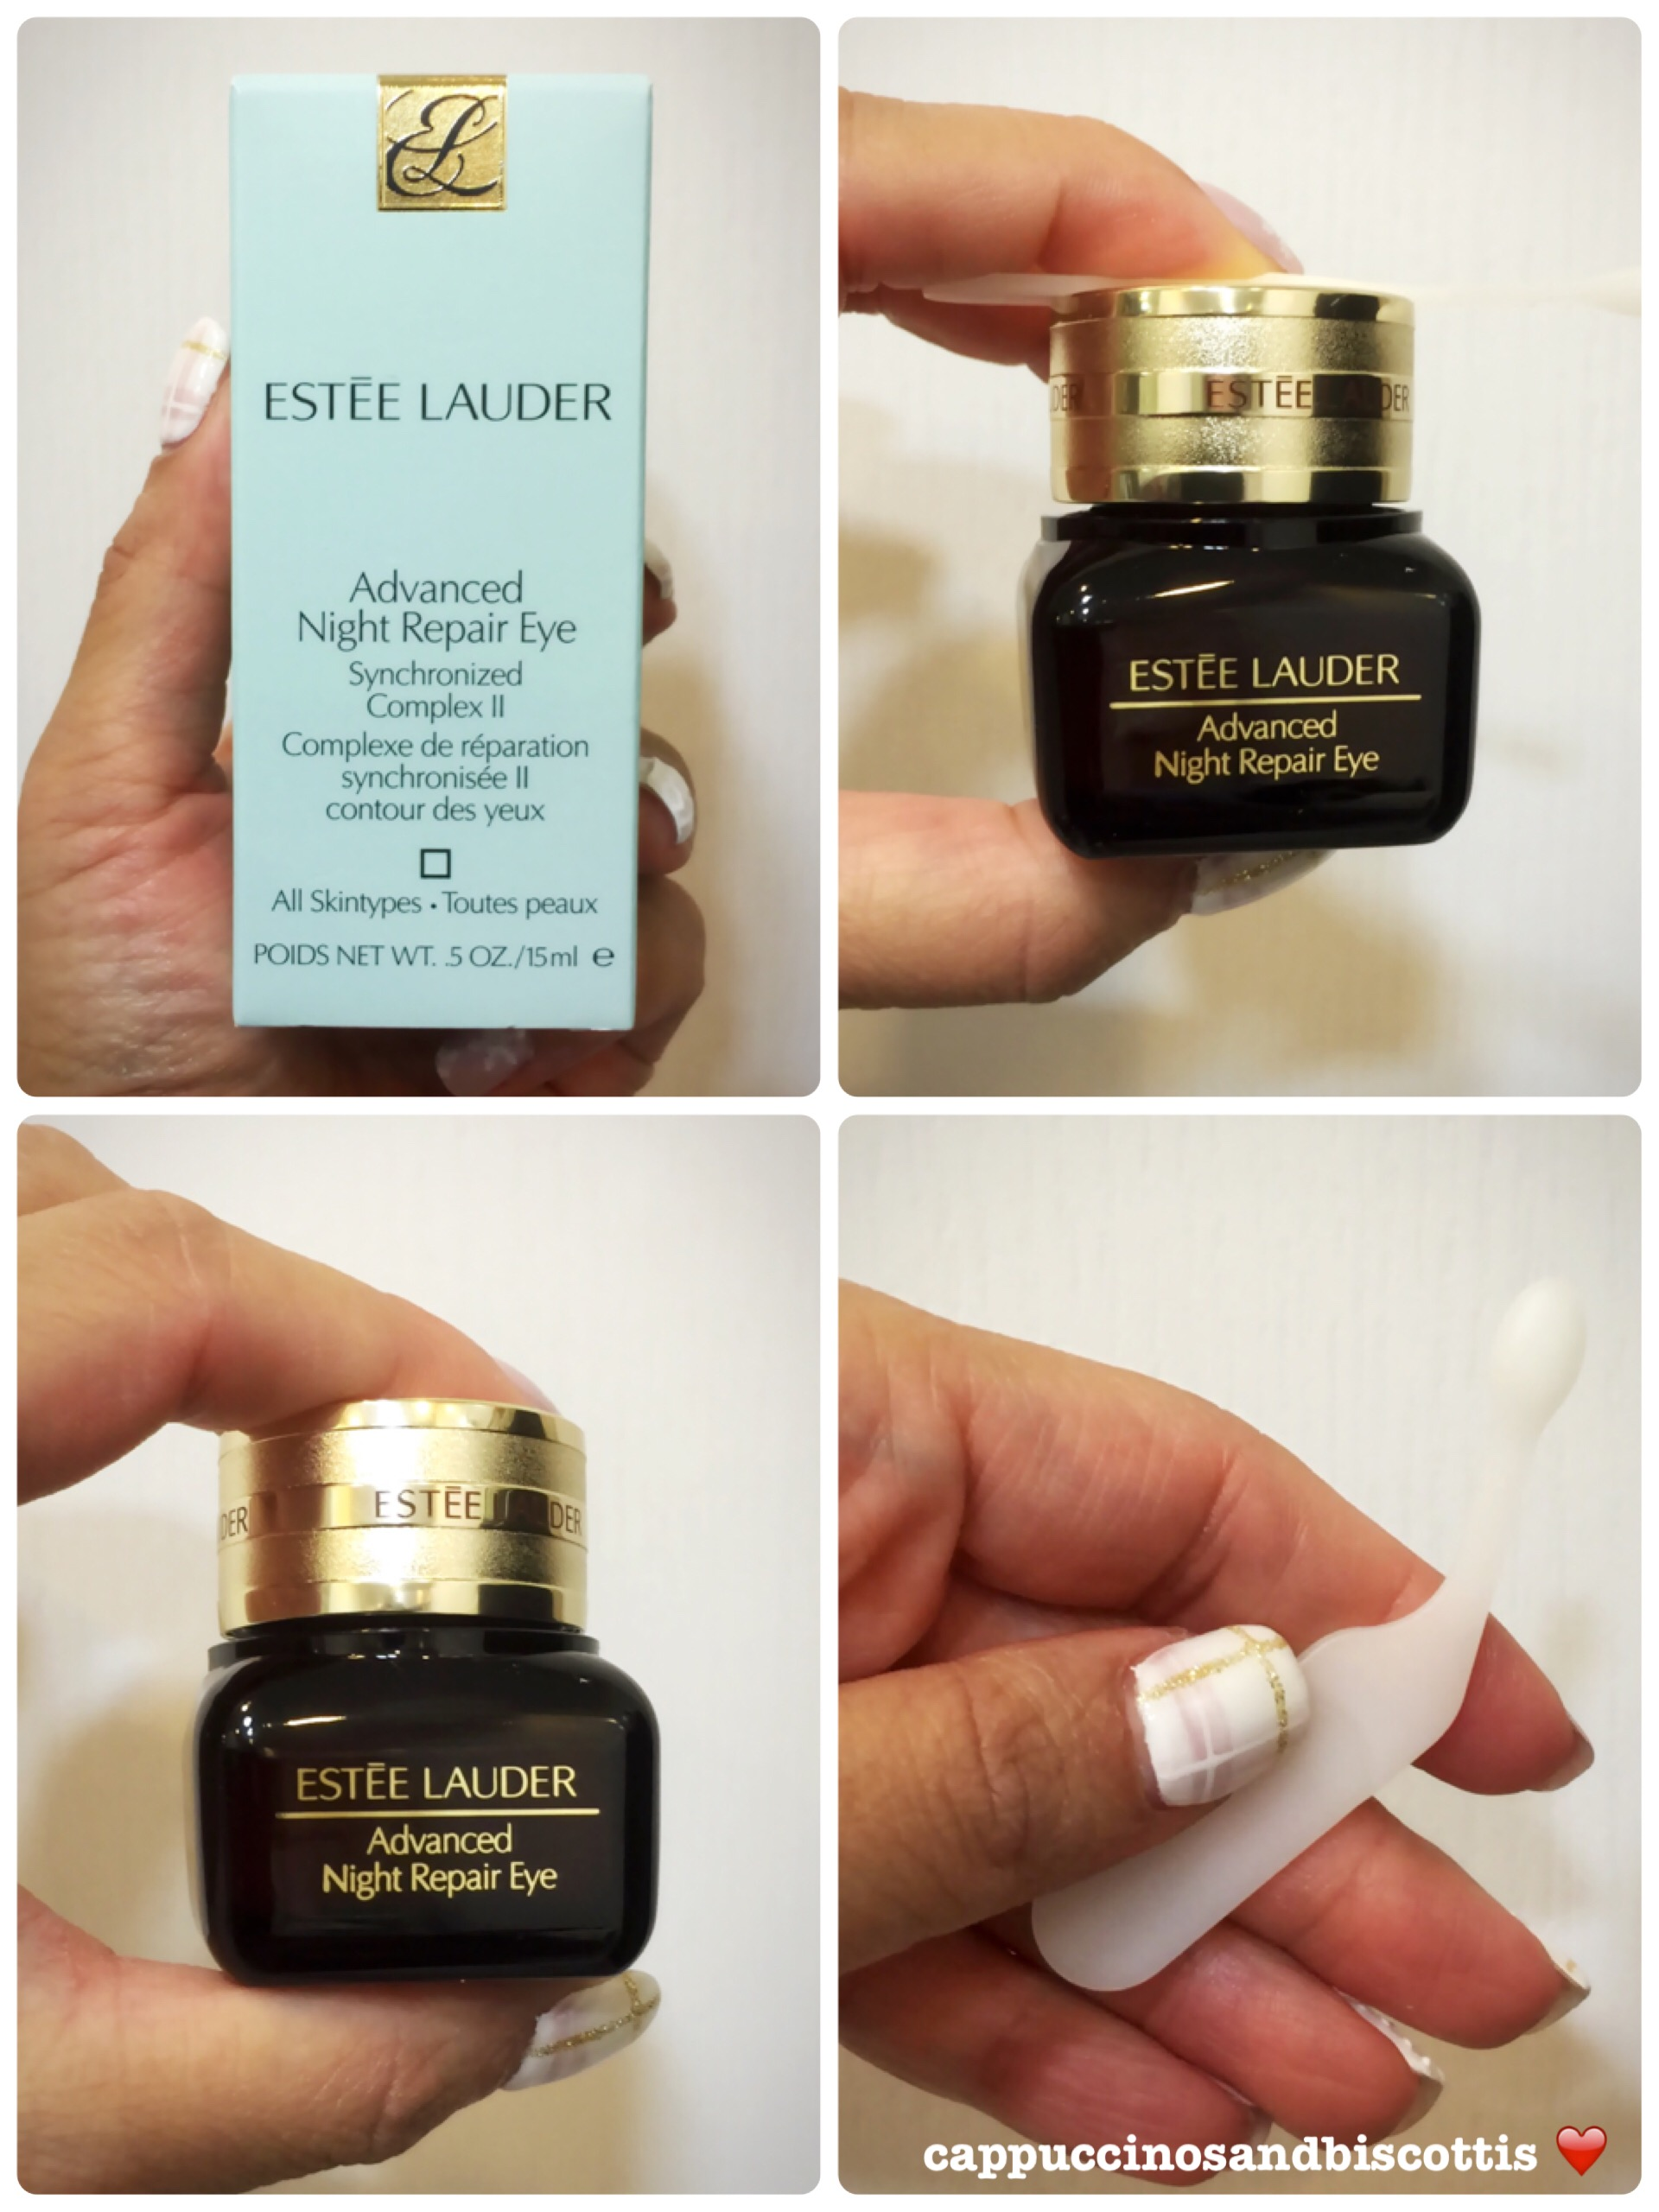 Estee Lauder Anr Ii Eye Cream Review Cappuccinos And Biscottis